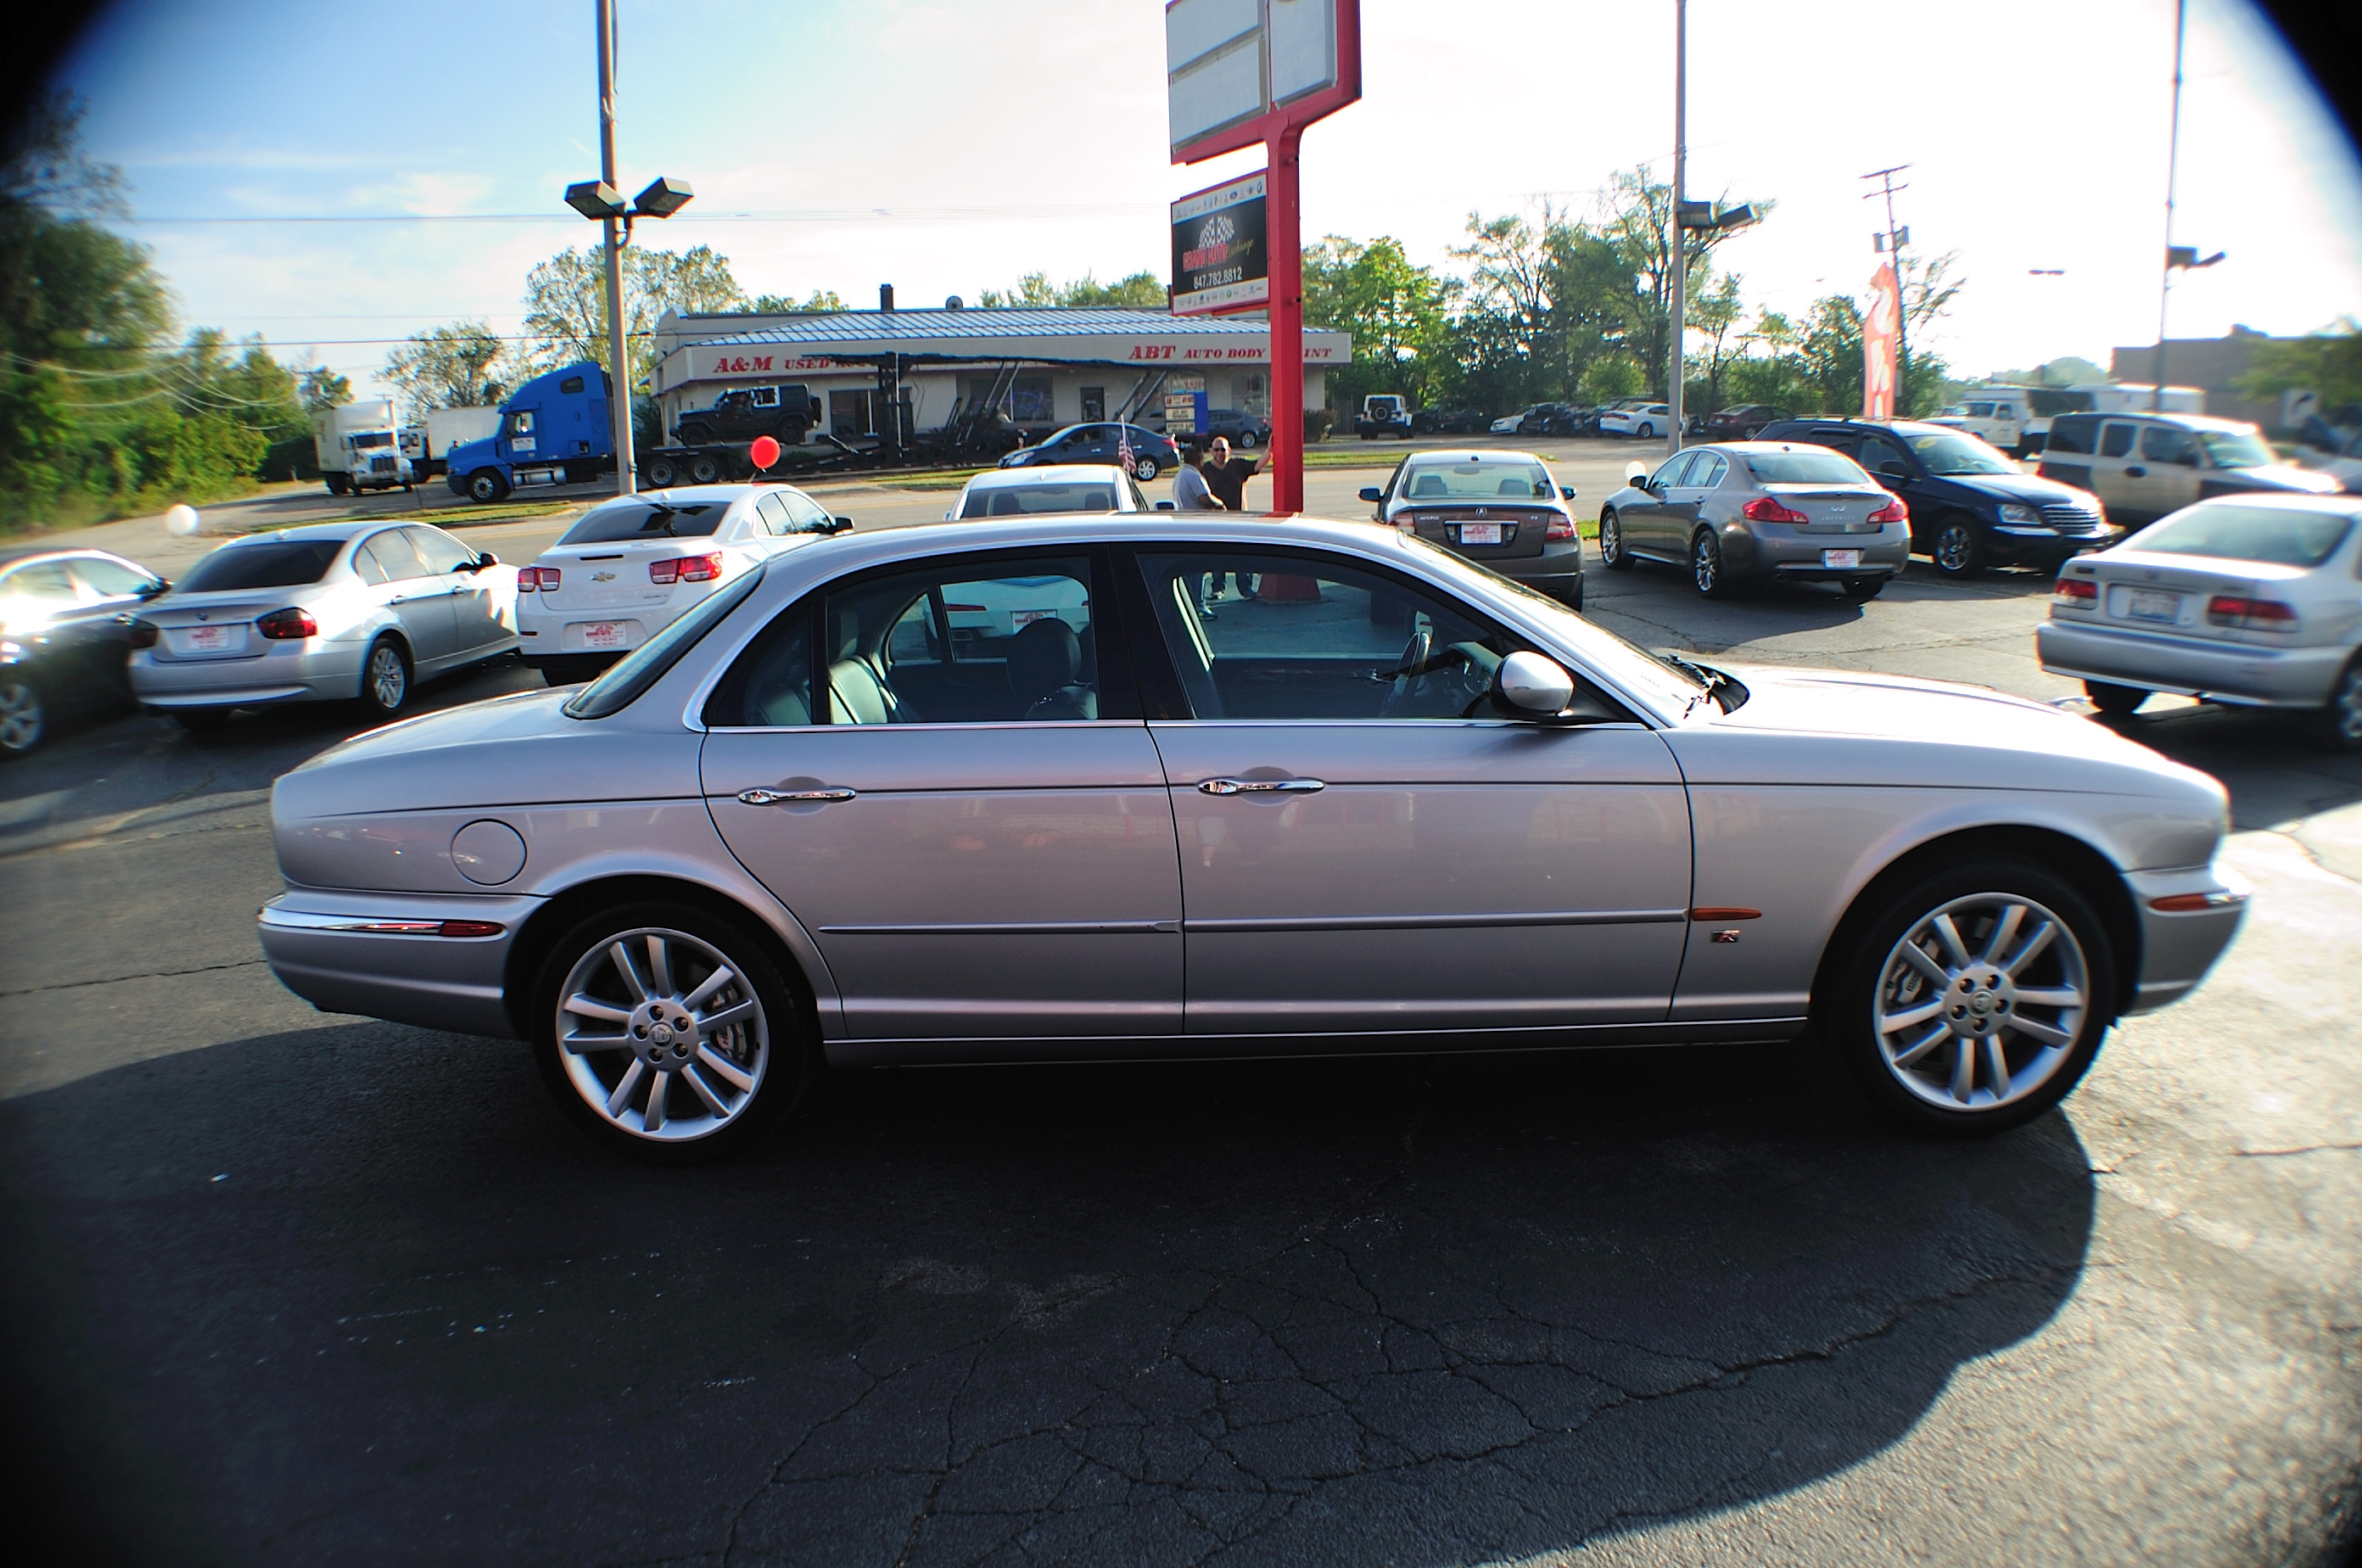 2005 Jaguar XJR Type Silver Sport Sedan Used Car Sale Bannockburn Barrington Beach Park